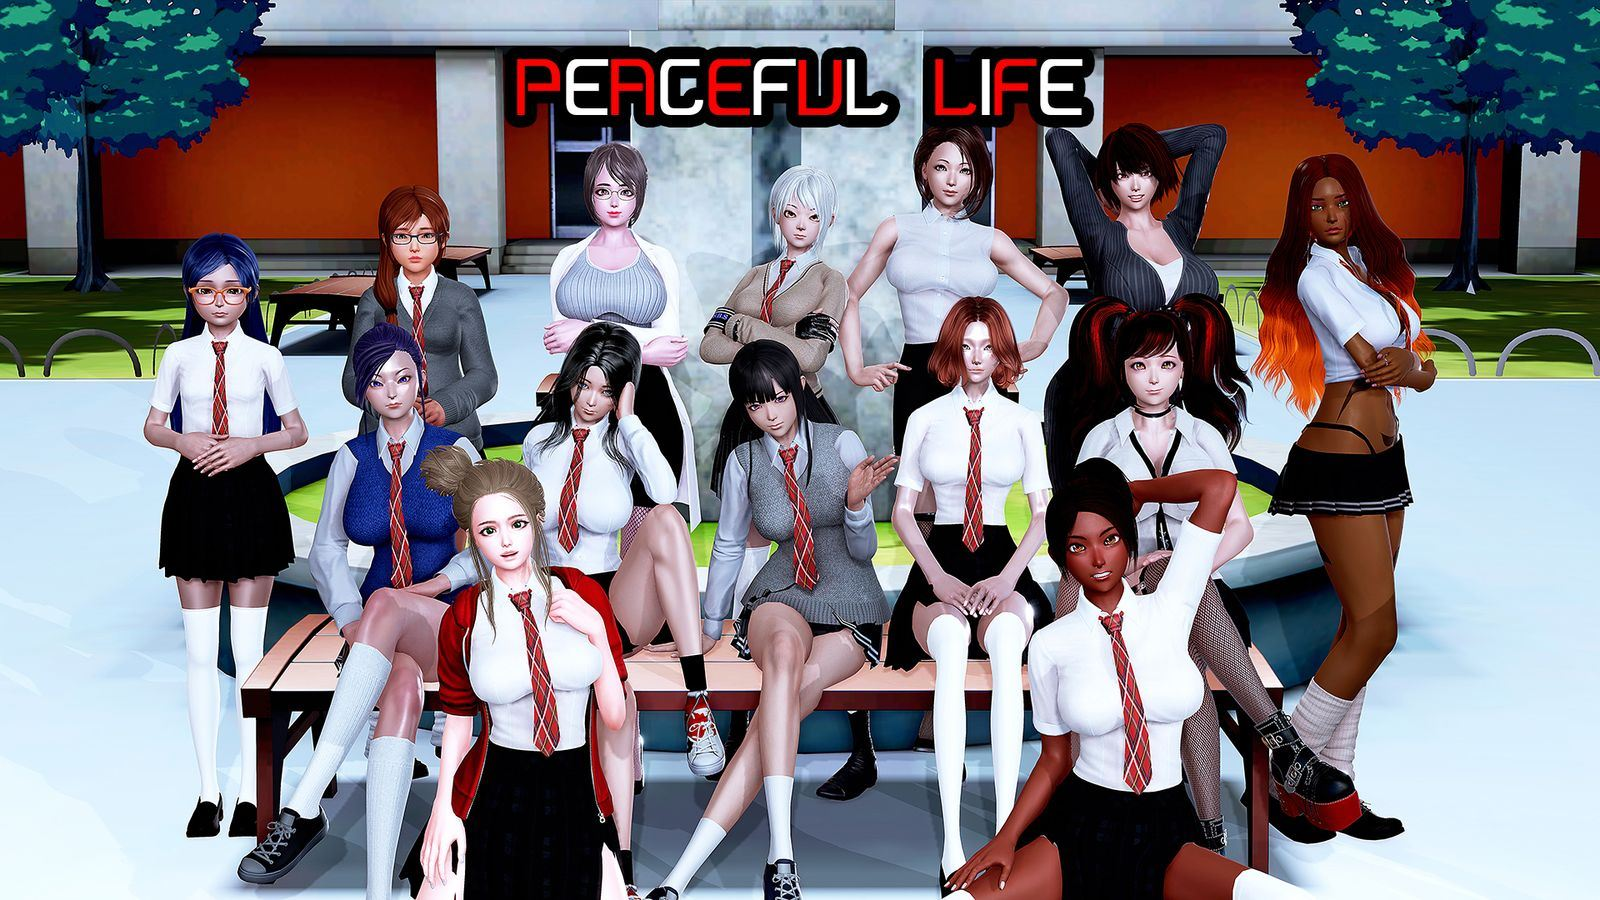 Peaceful Life Adult Game Cover